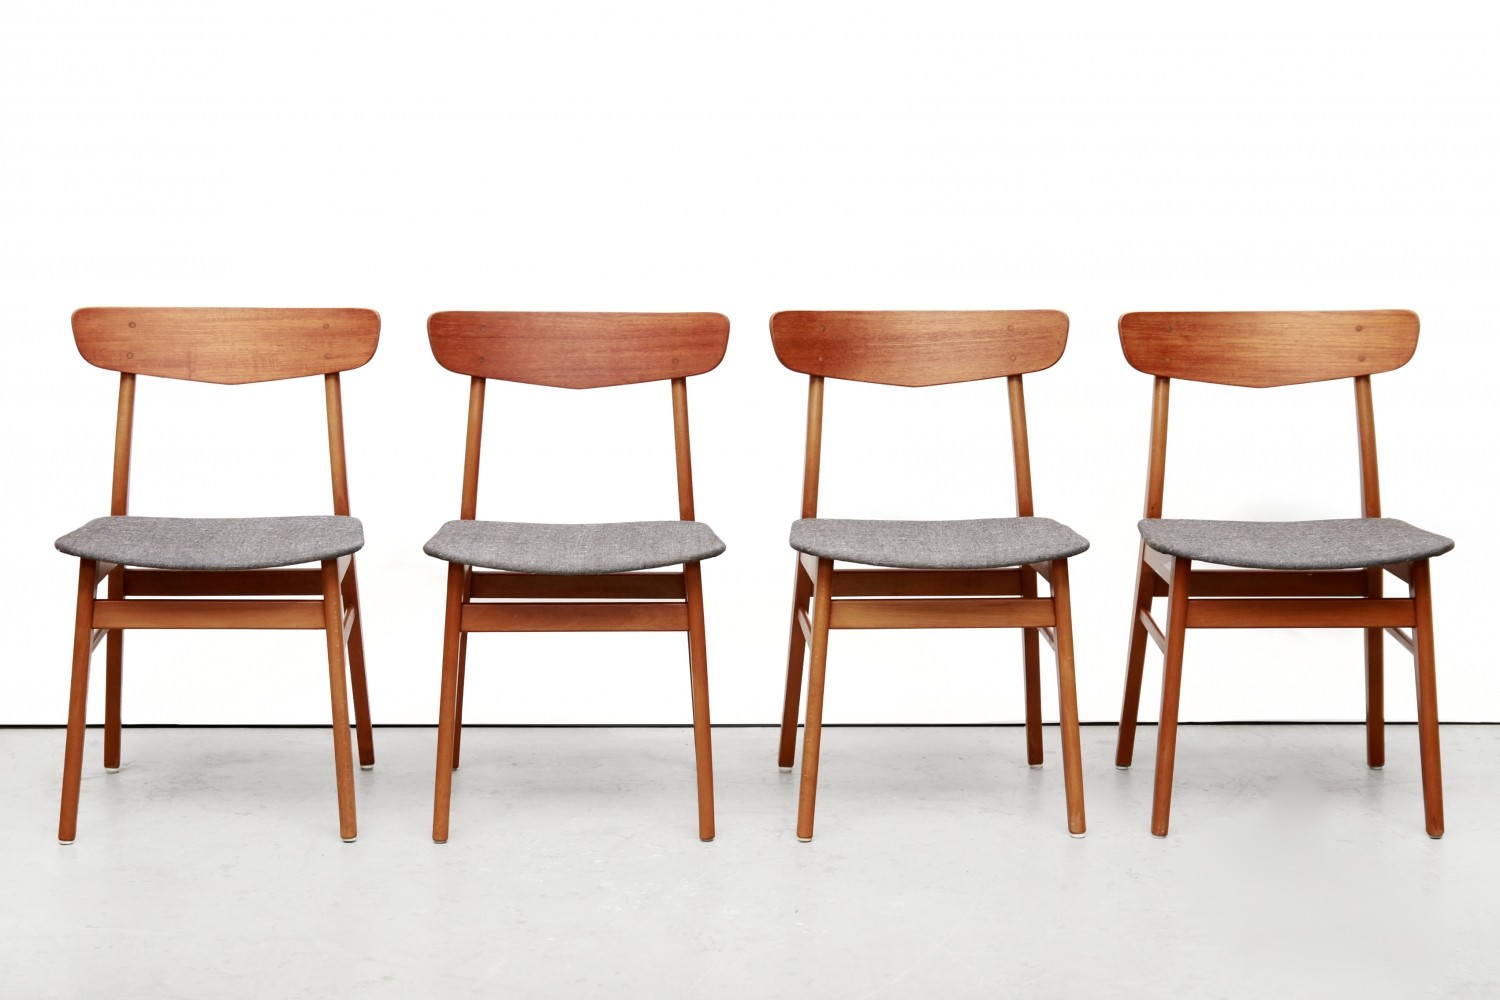 Set of 4 Farstrup dining chairs, 1960s